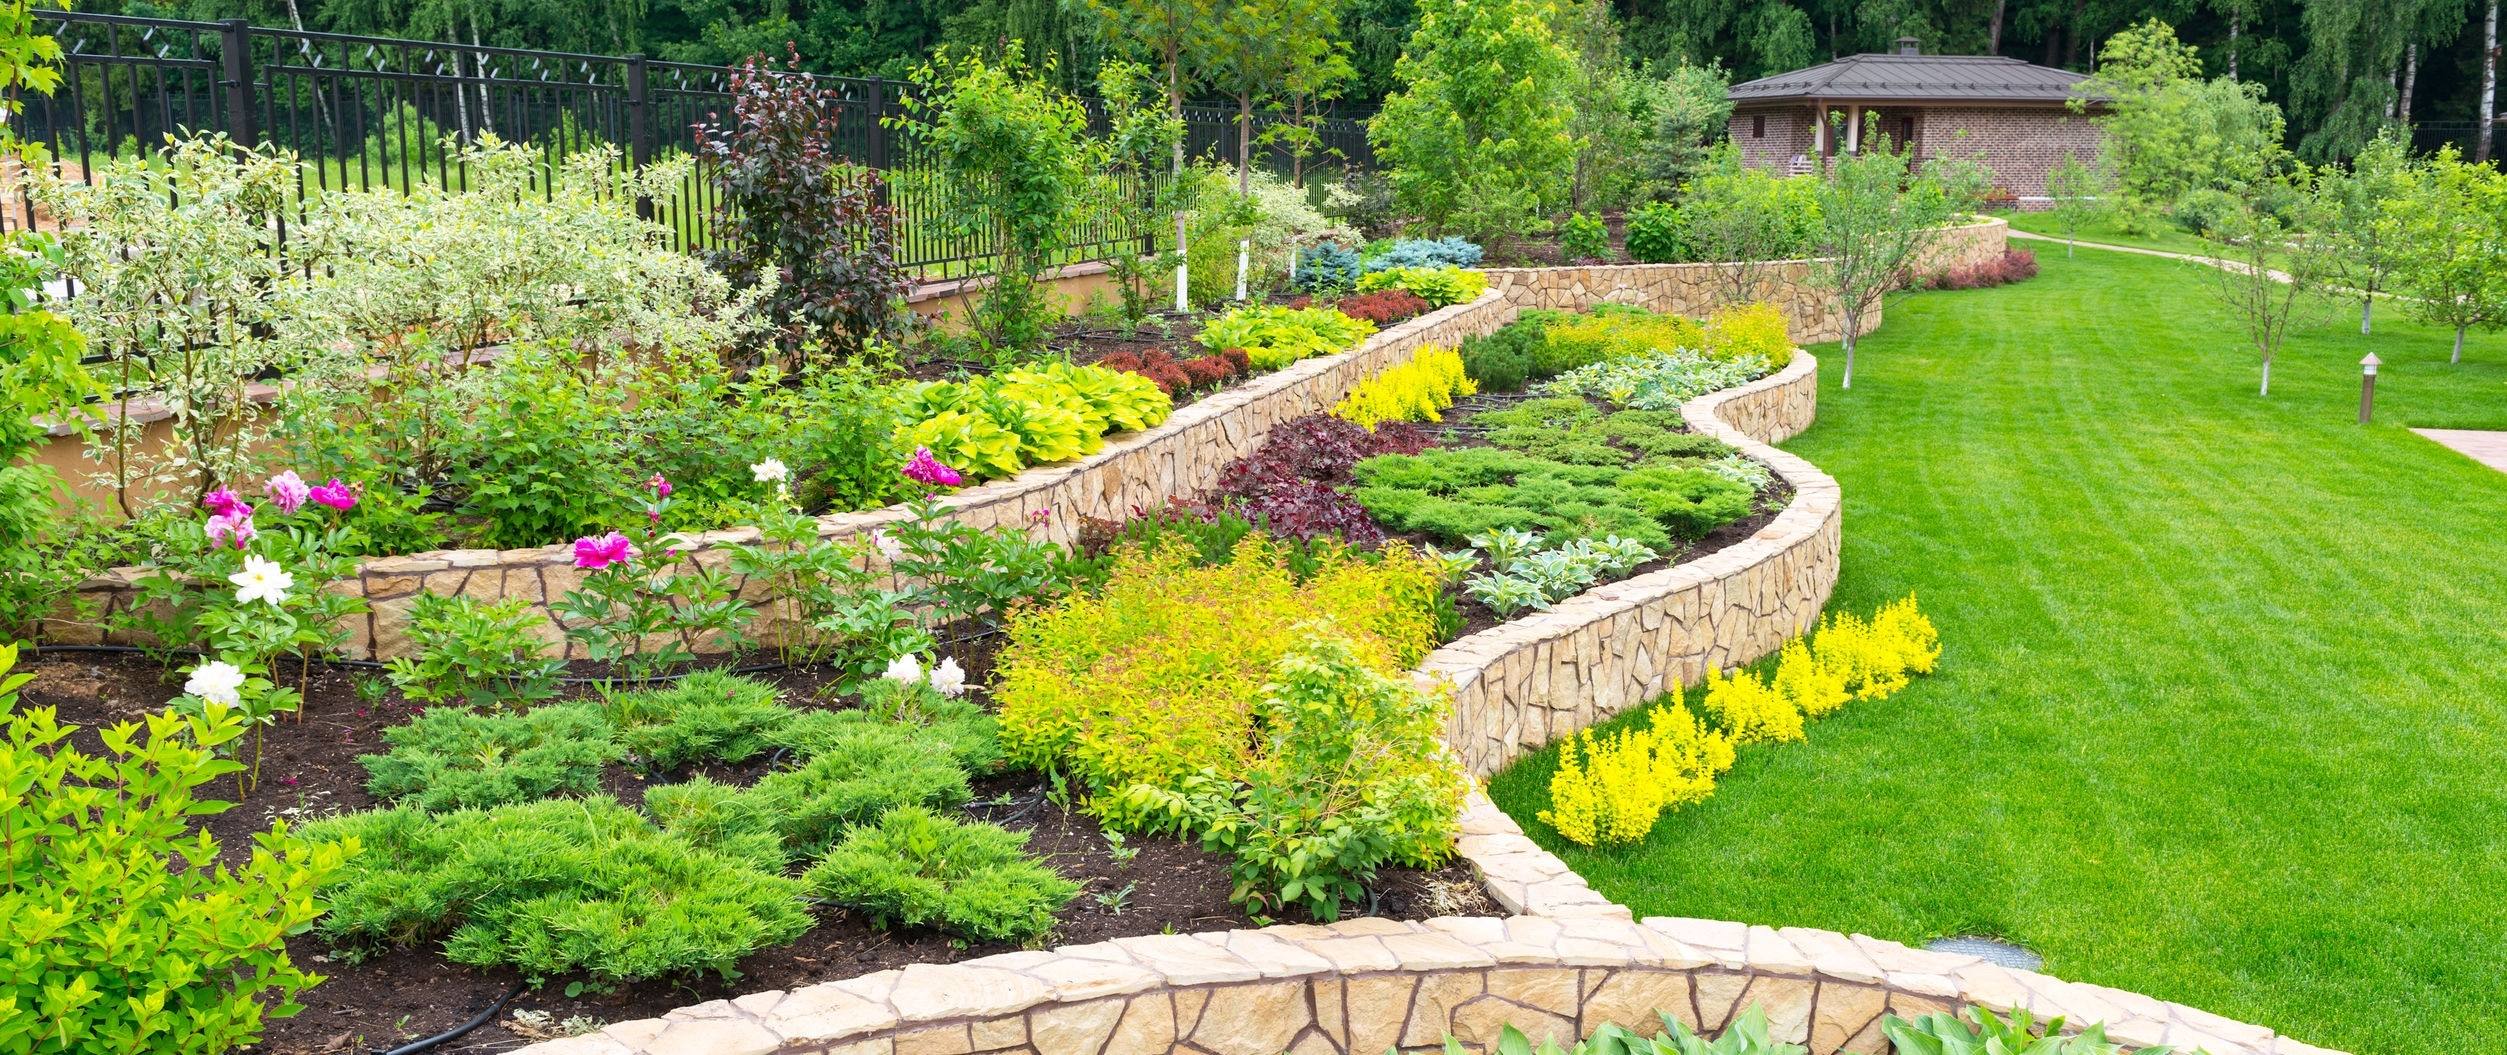 Lawn and plant beds